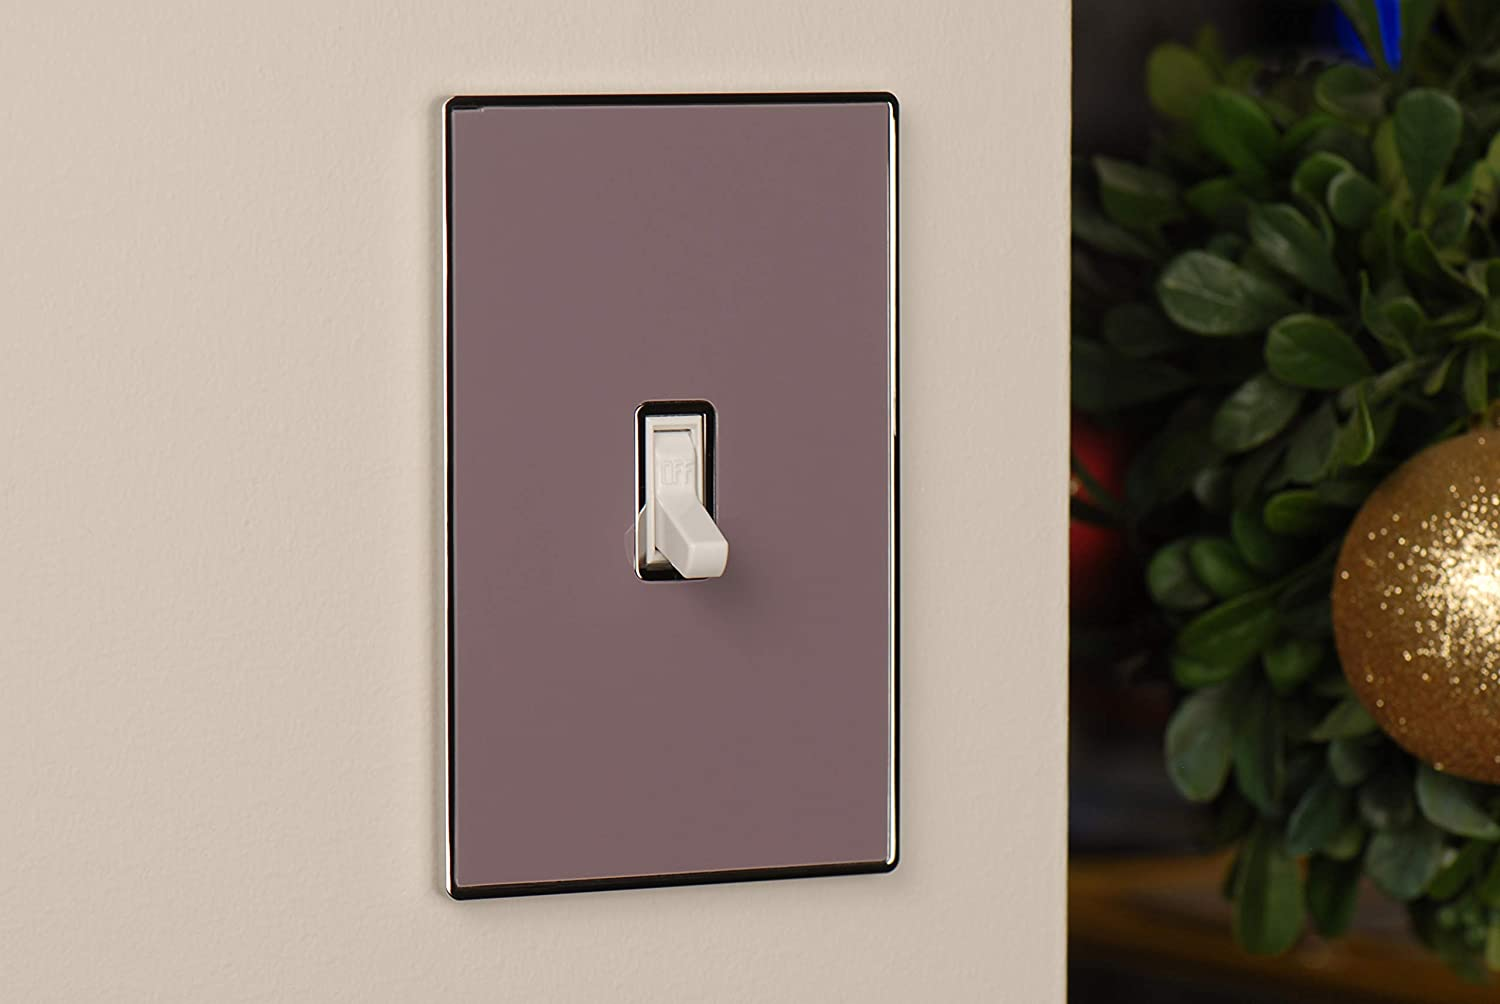 Urban Chameleon Premium 1 Gang Toggle Light Switch Covers Wallplate Switch Plate Mauve Switch Plates Amazon Canada